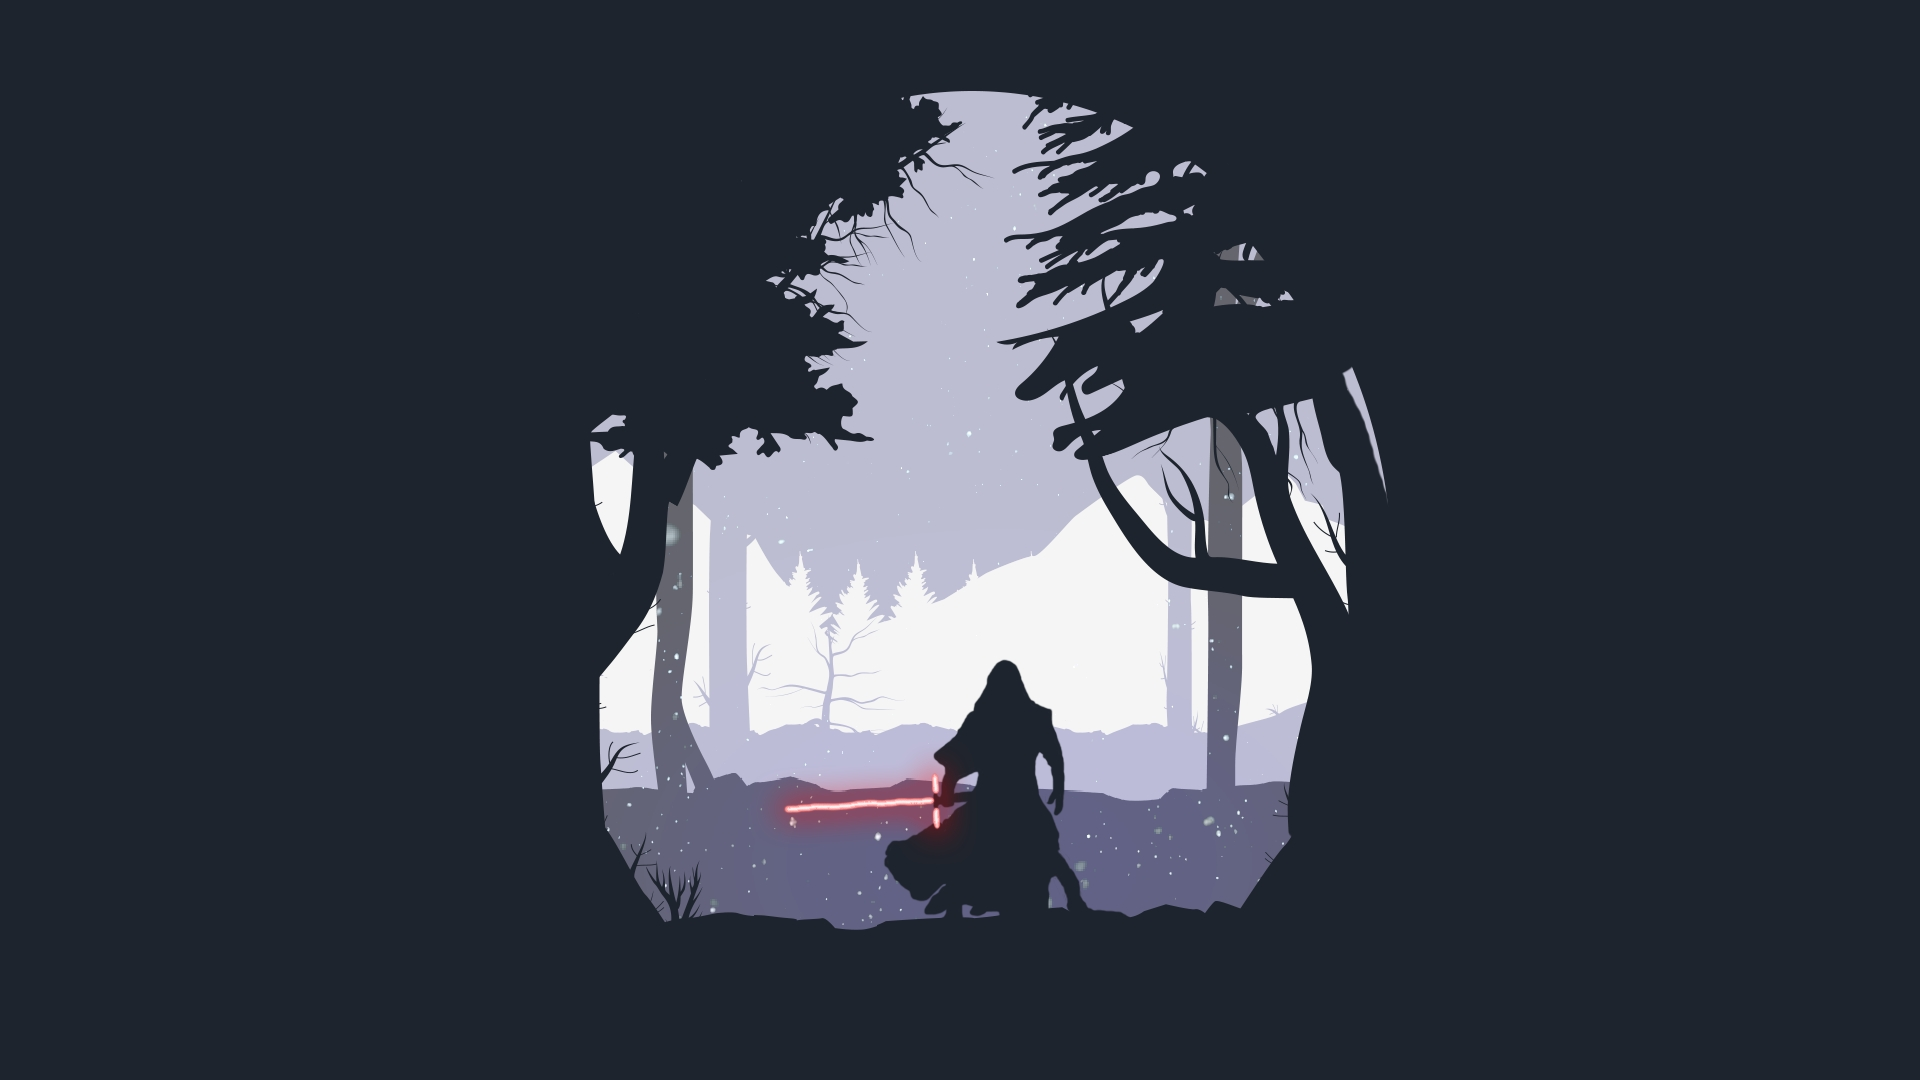 star wars wallpaper images free download > subwallpaper